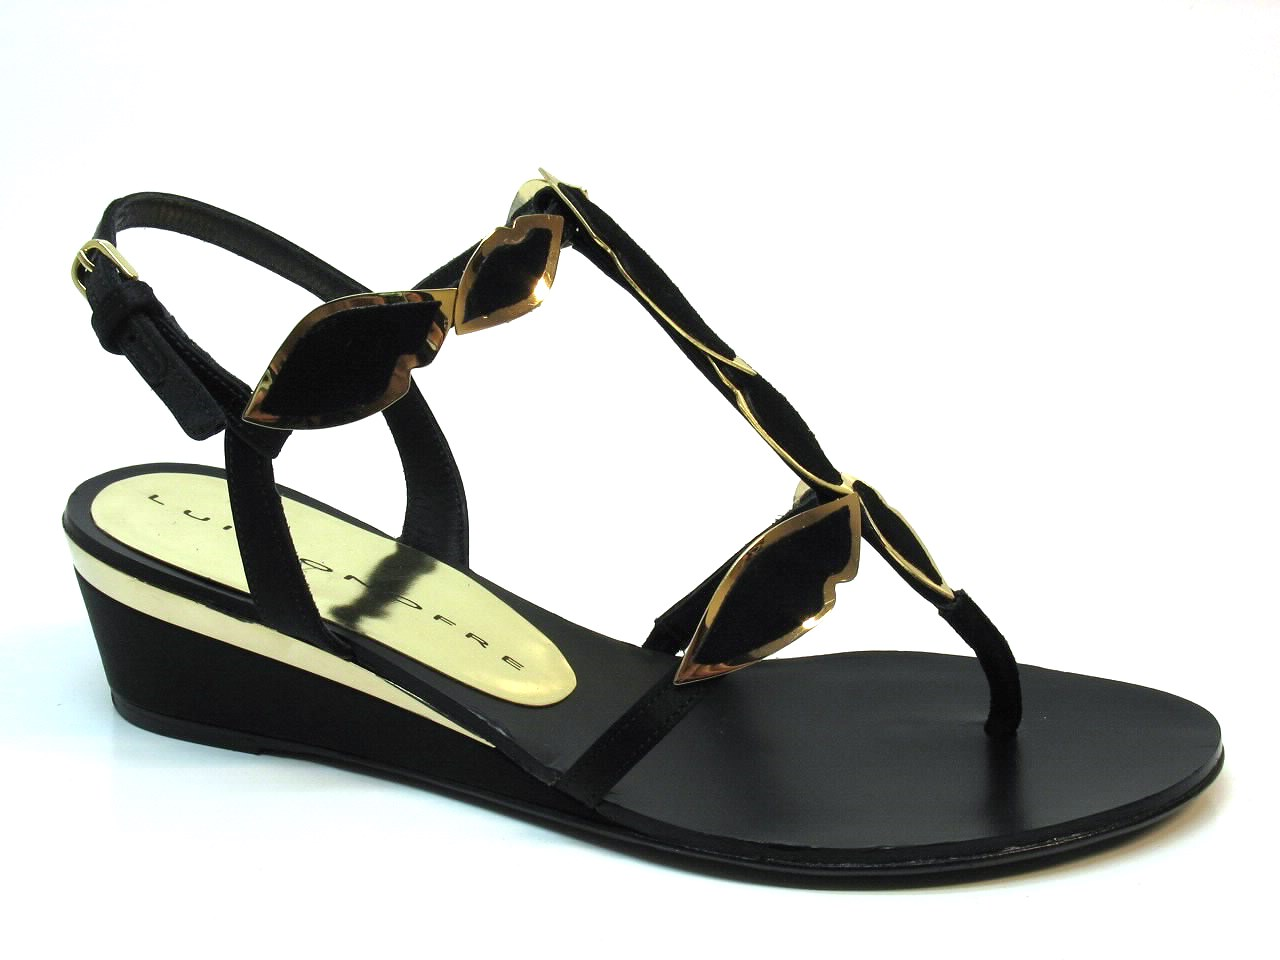 Wedge Sandals Luis Onofre - 293 2478